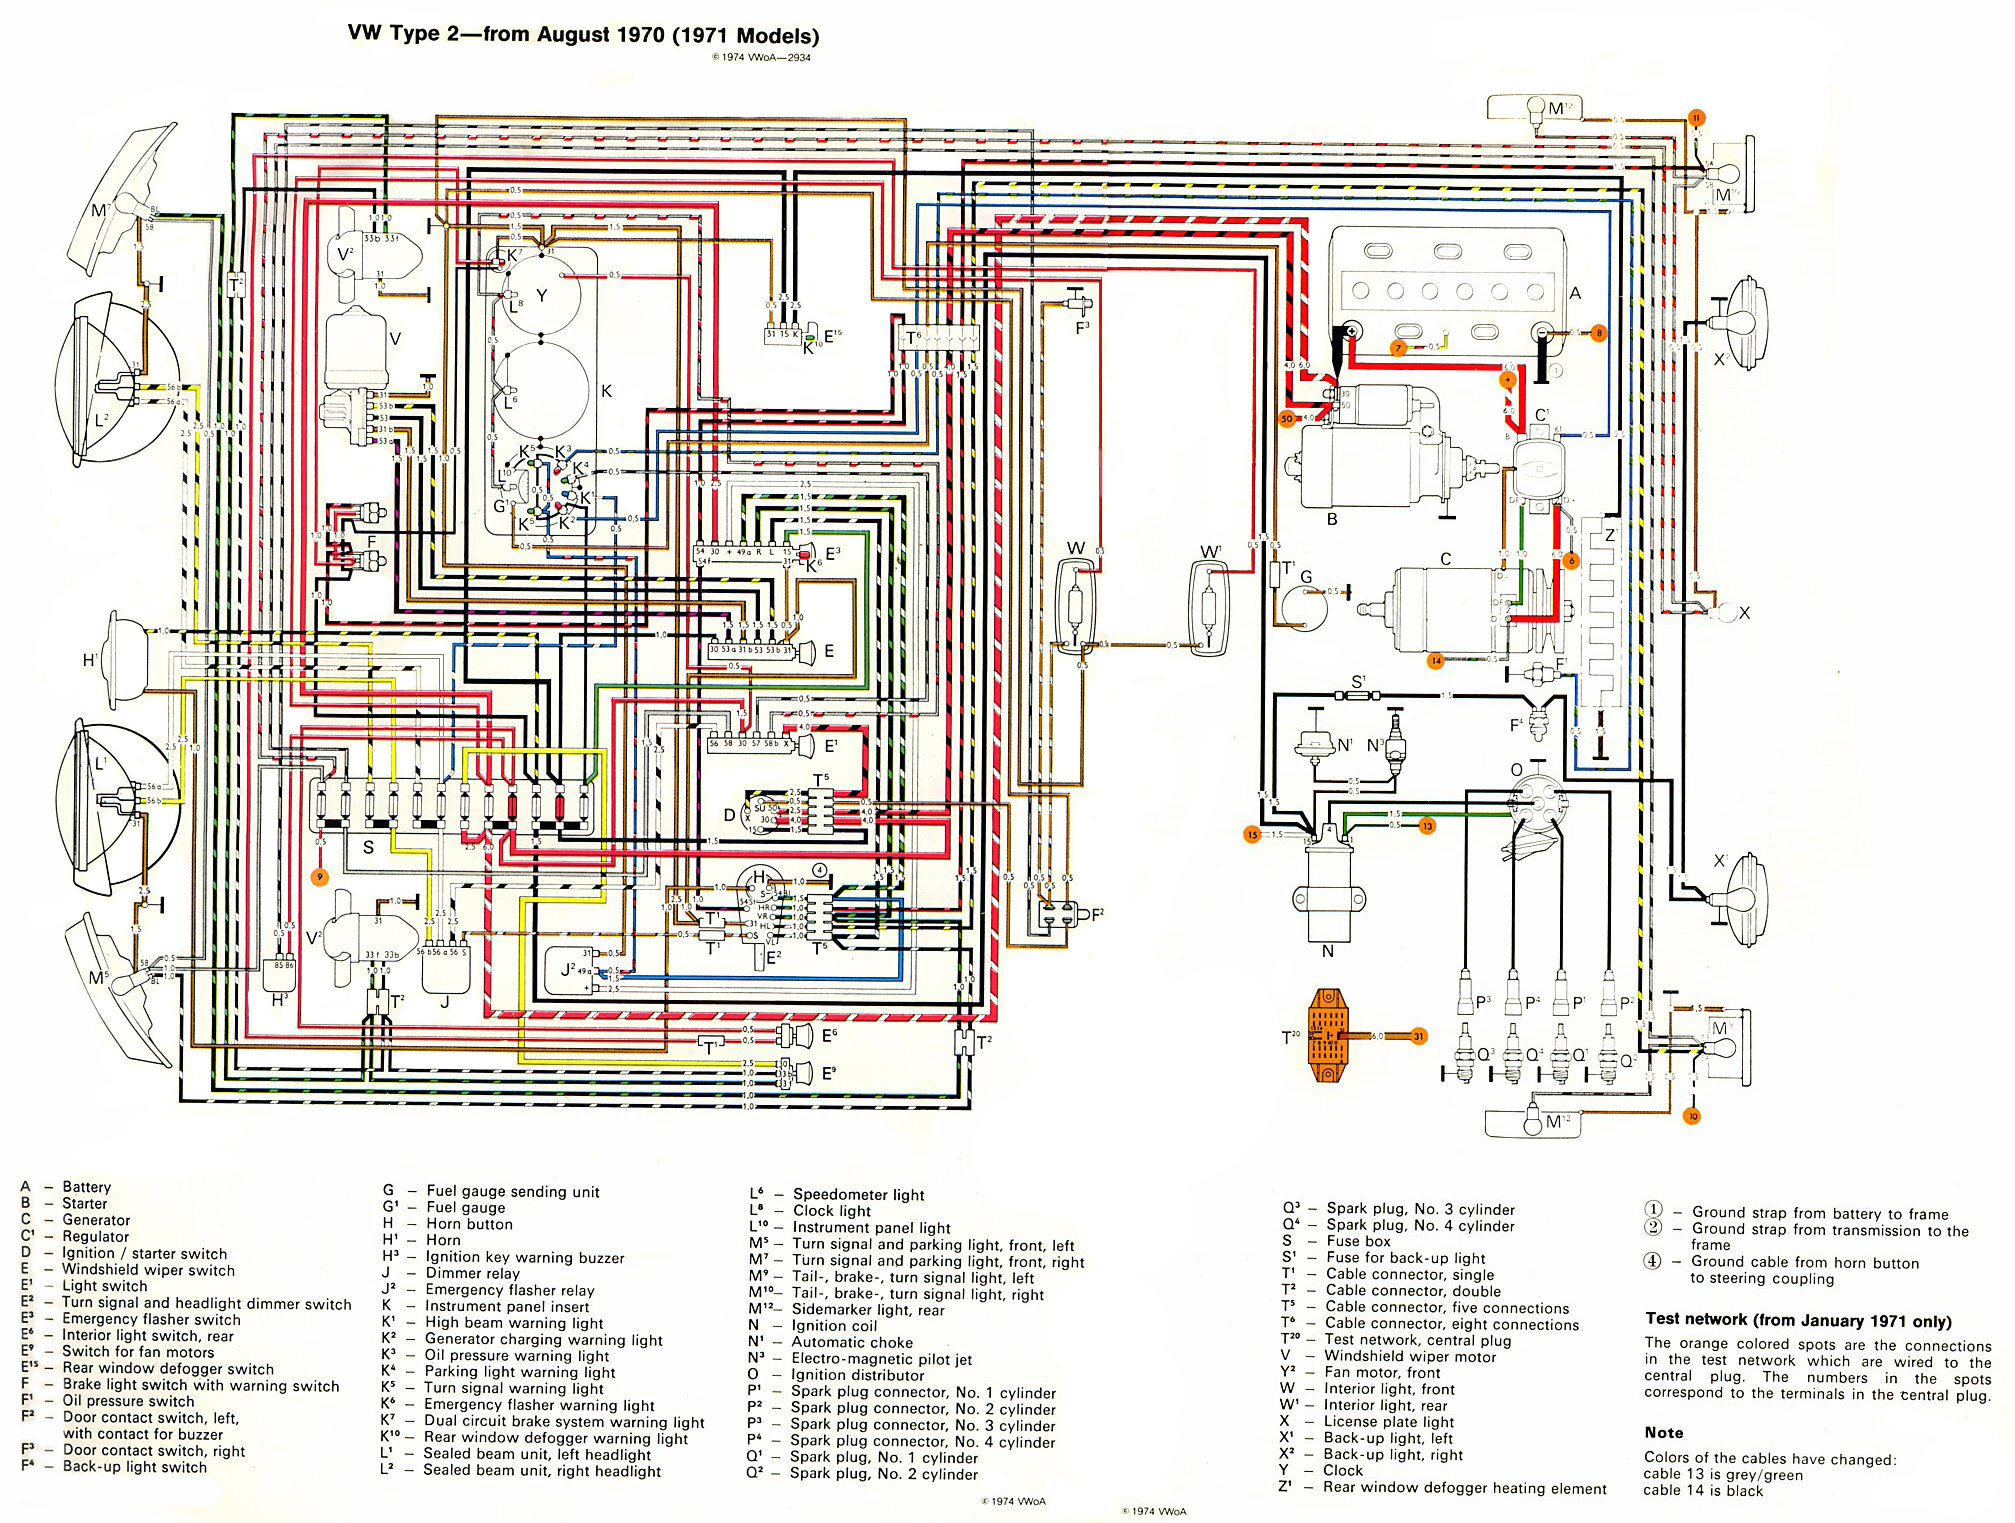 baybus_71_fixed thesamba com type 2 wiring diagrams Electrical Wiring Diagrams at gsmx.co